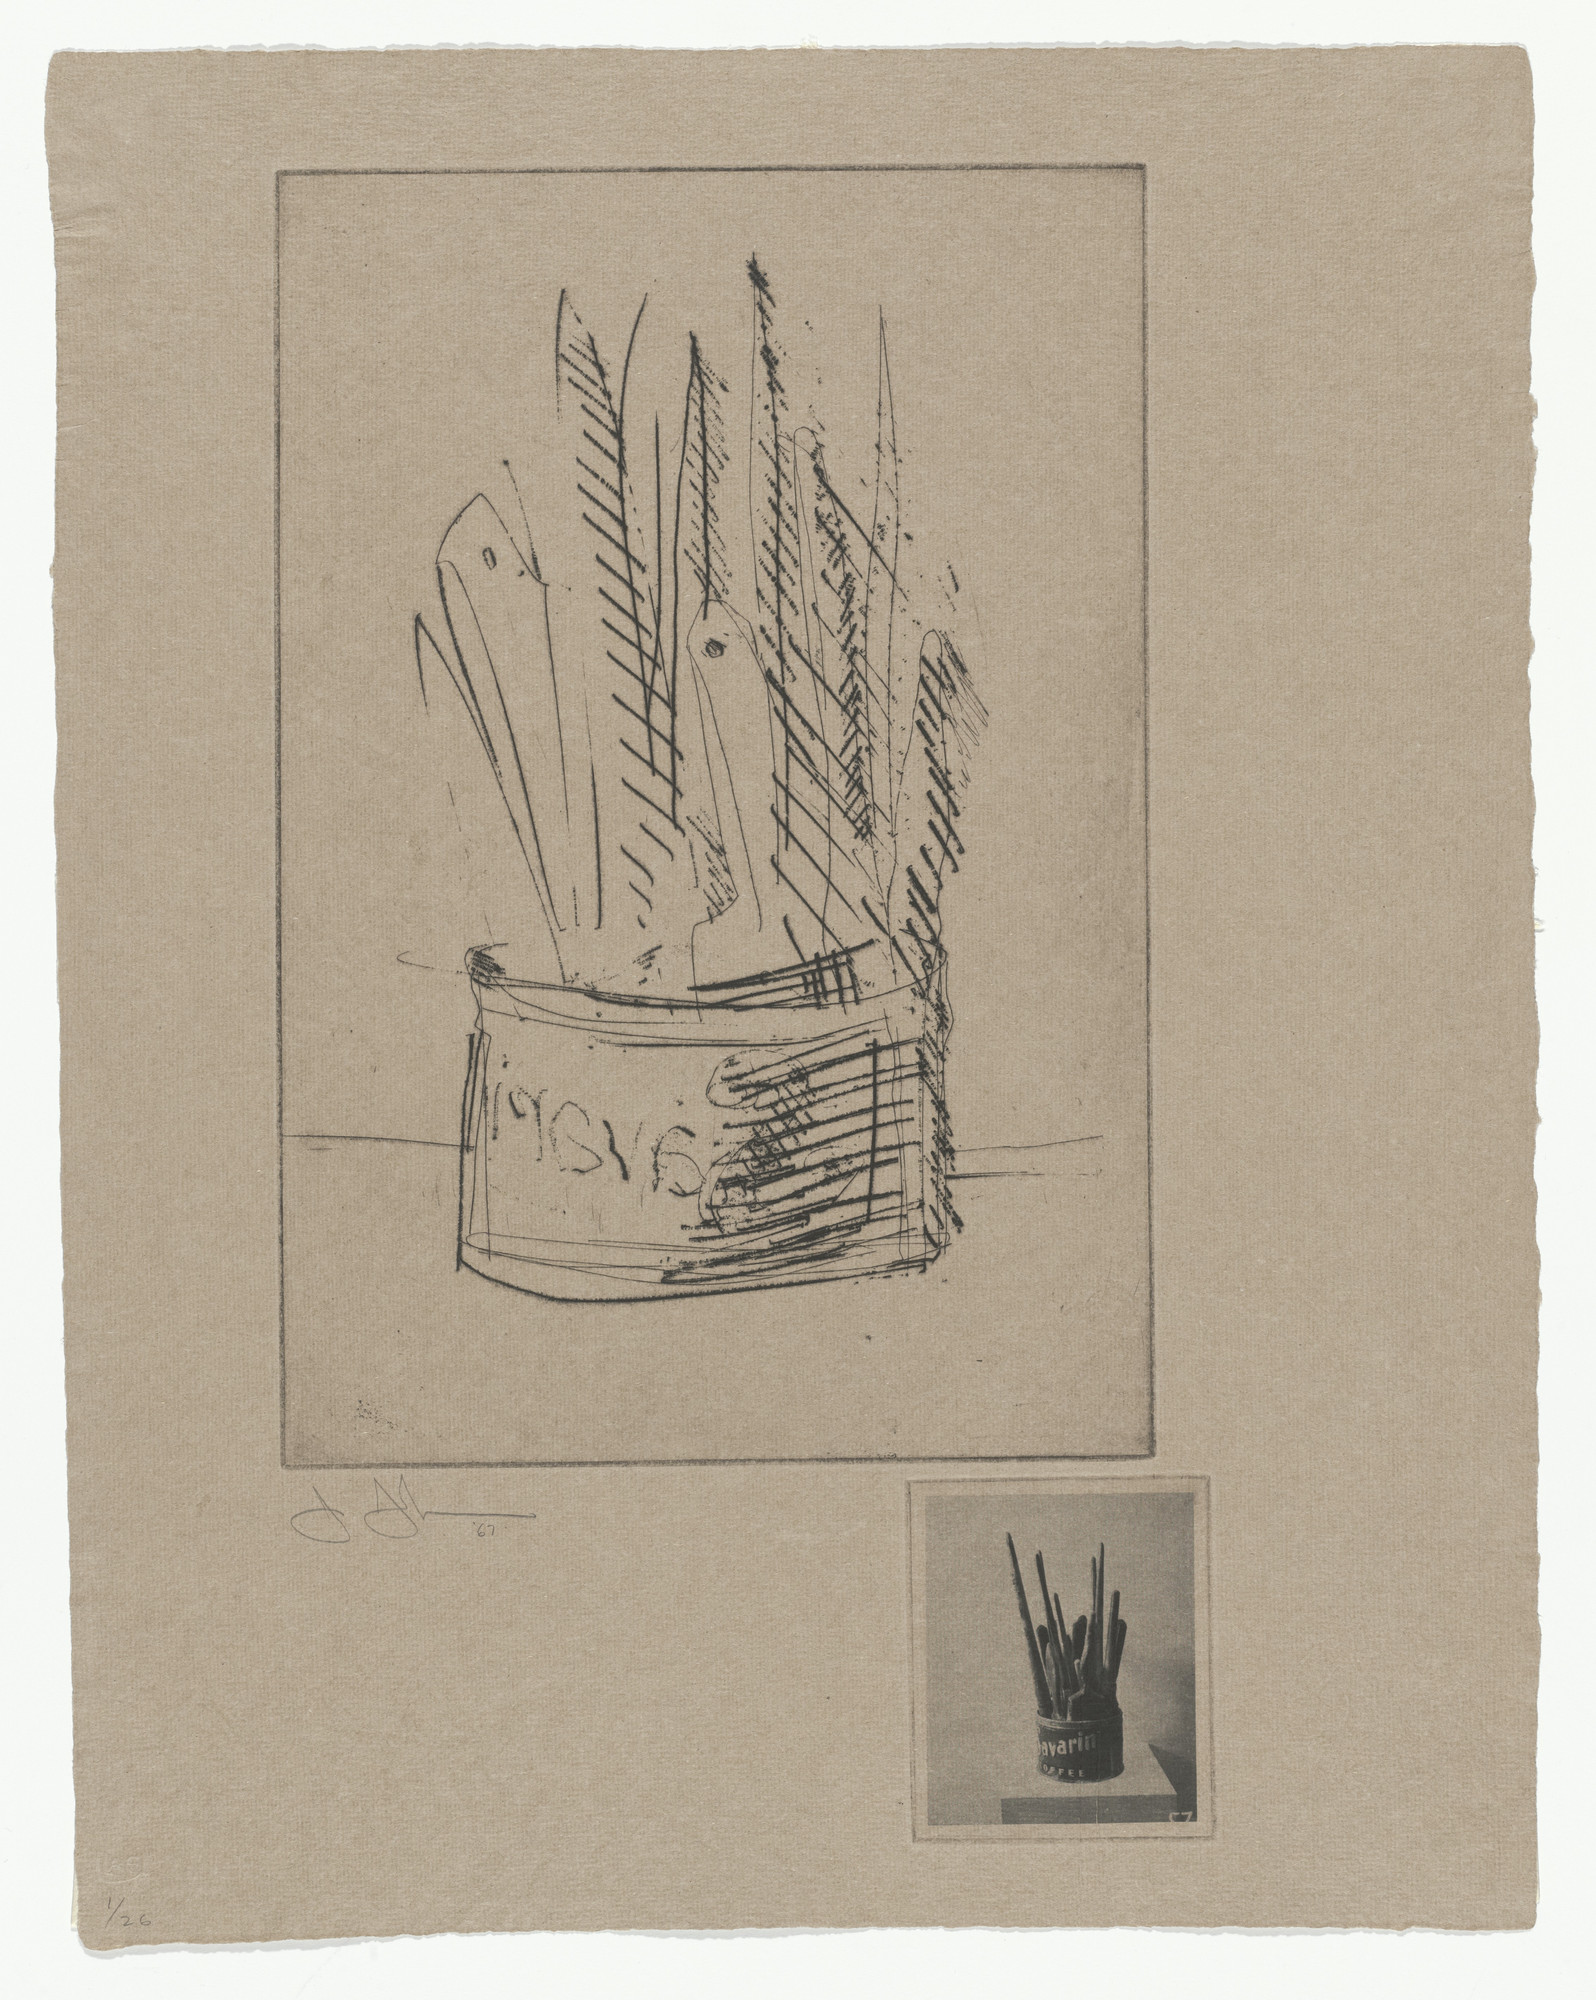 Jasper Johns. Paintbrushes from 1st Etchings. 1967